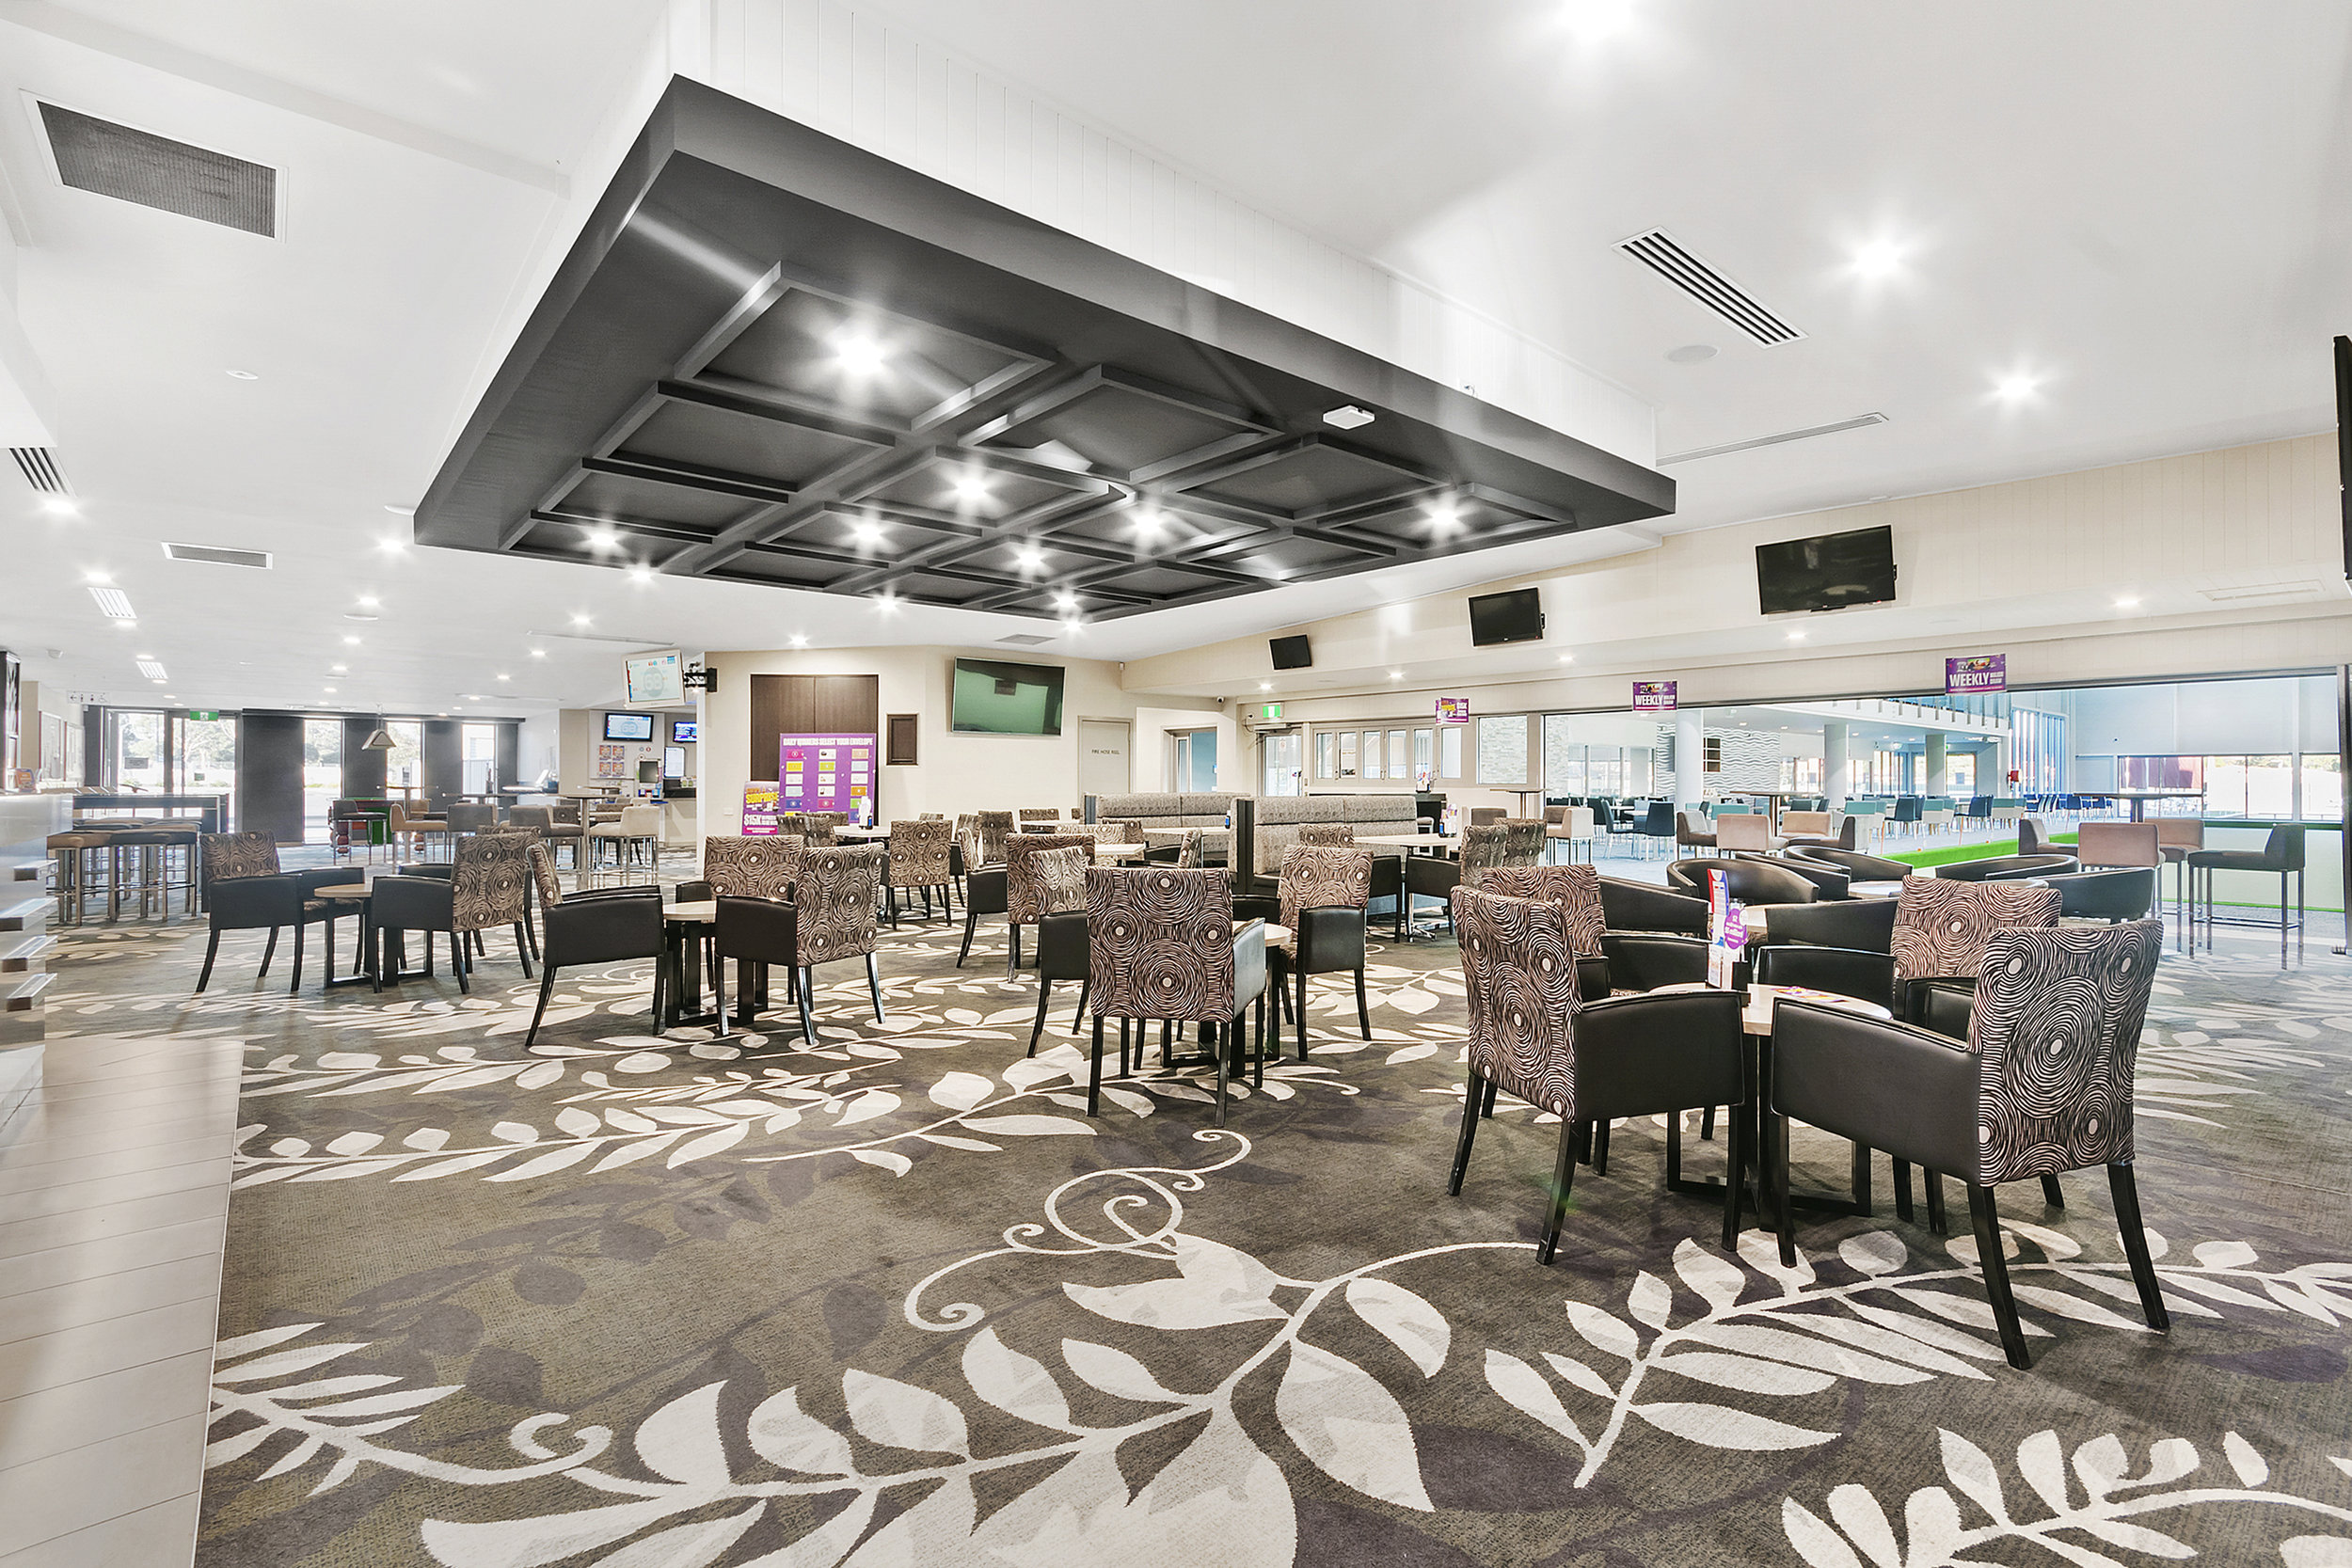 Traralgon Bowls Club - May 2019 (Open2view Gippsland) (19).jpg